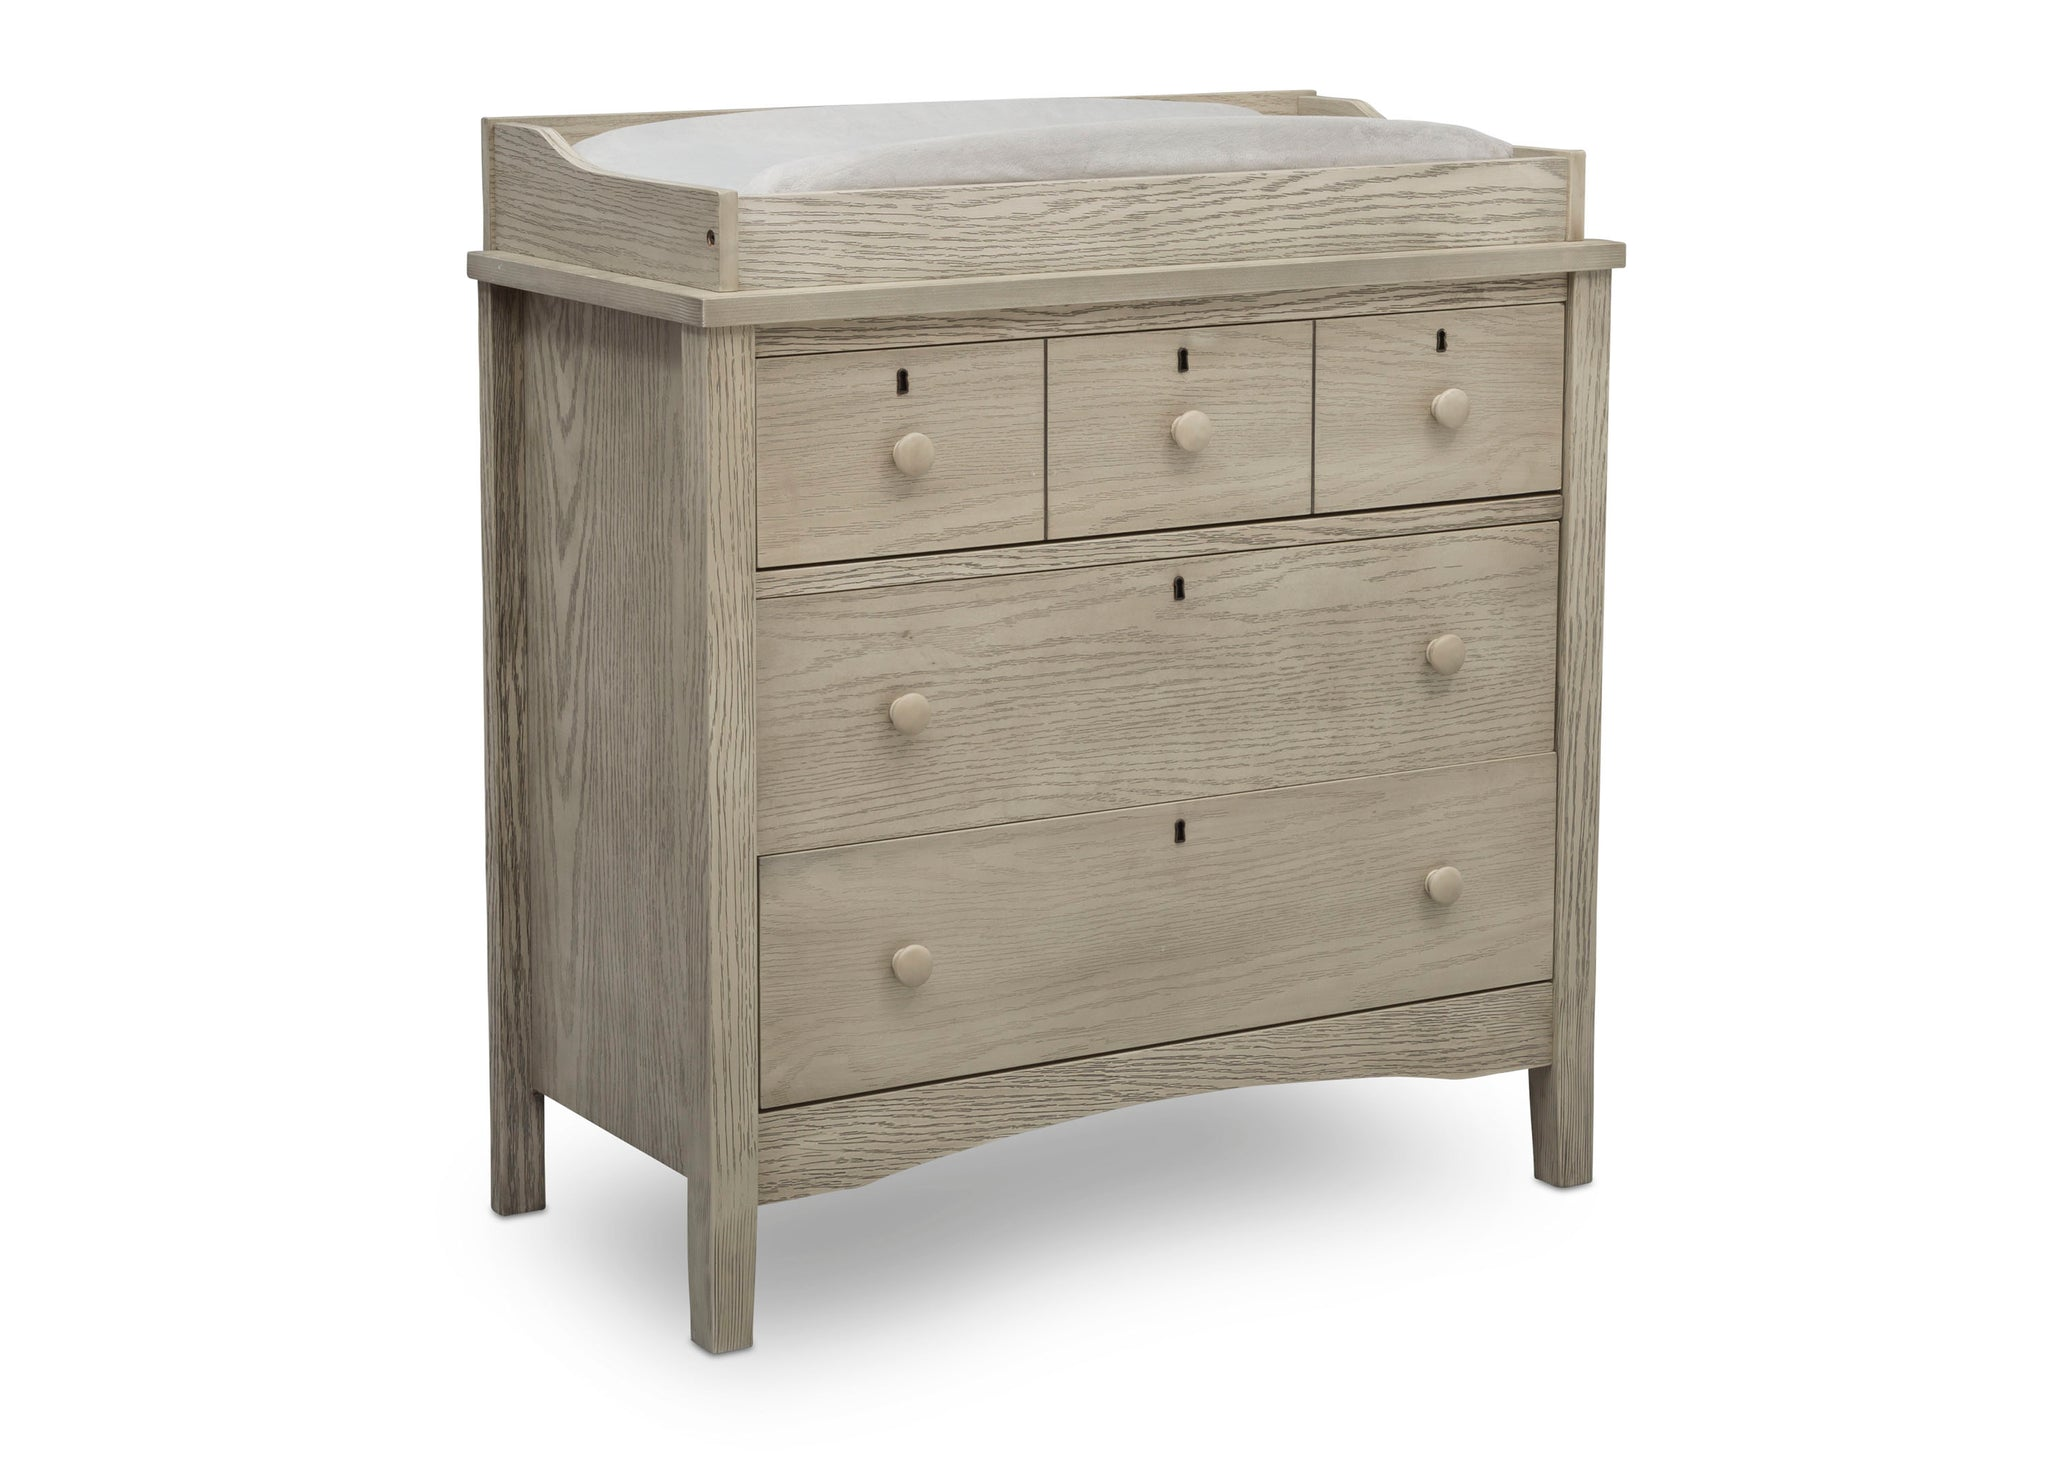 Delta Children Textured Limestone (1340) Farmhouse 3 Drawer Dresser with Changing Top, Right Silo View